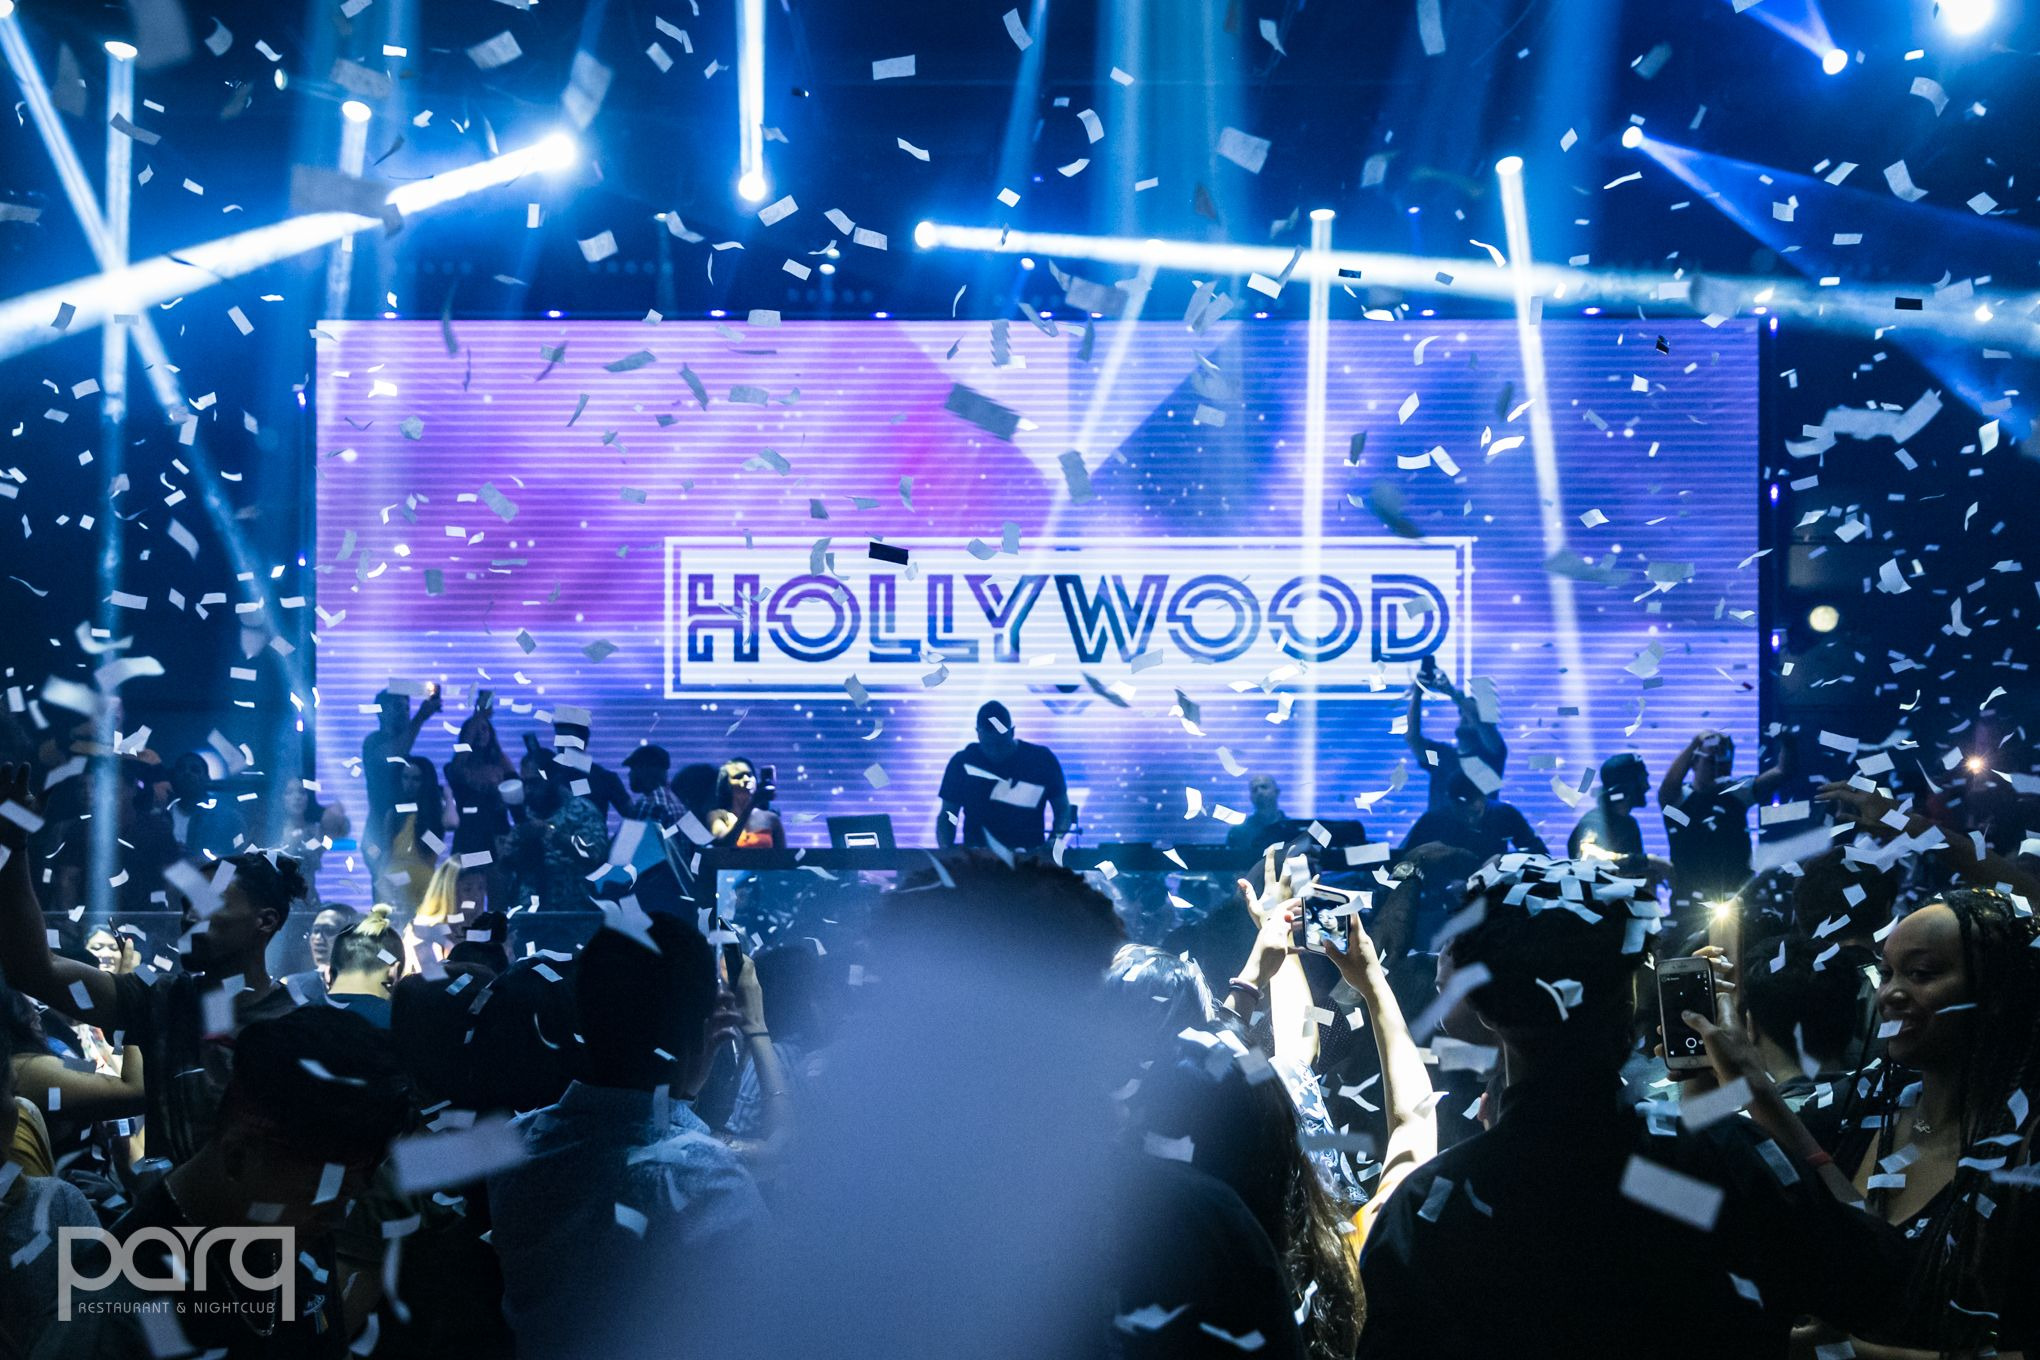 06.07.19 Parq - DJ Hollywood-1.jpg